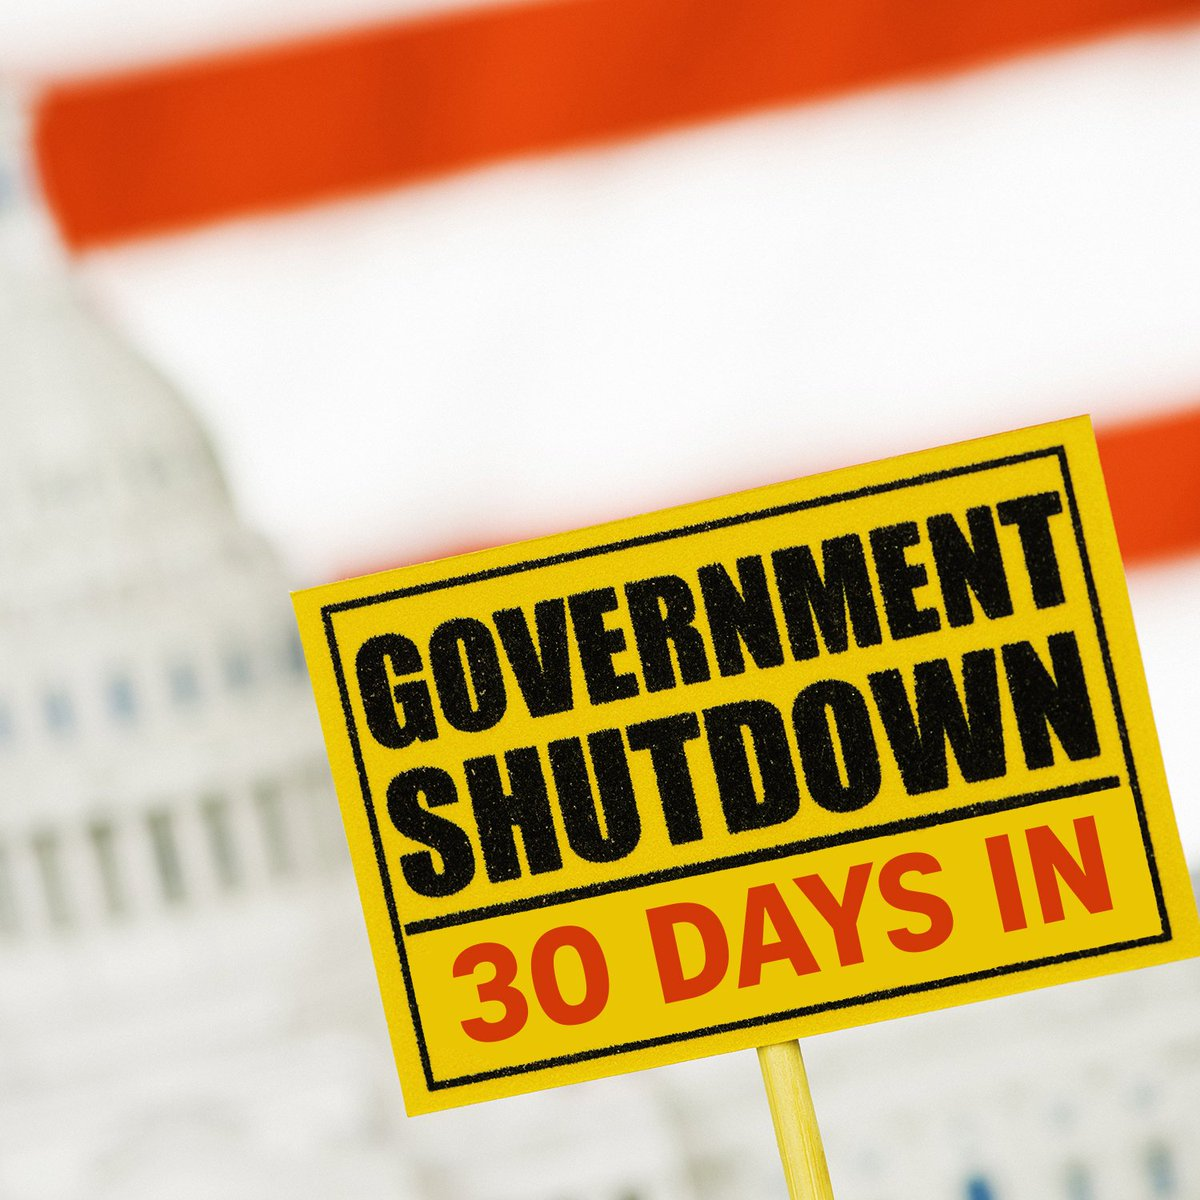 It's officially DAY 30 of the #Shutdown-- here's the latest:  https://t.co/MxzcJLyQvu